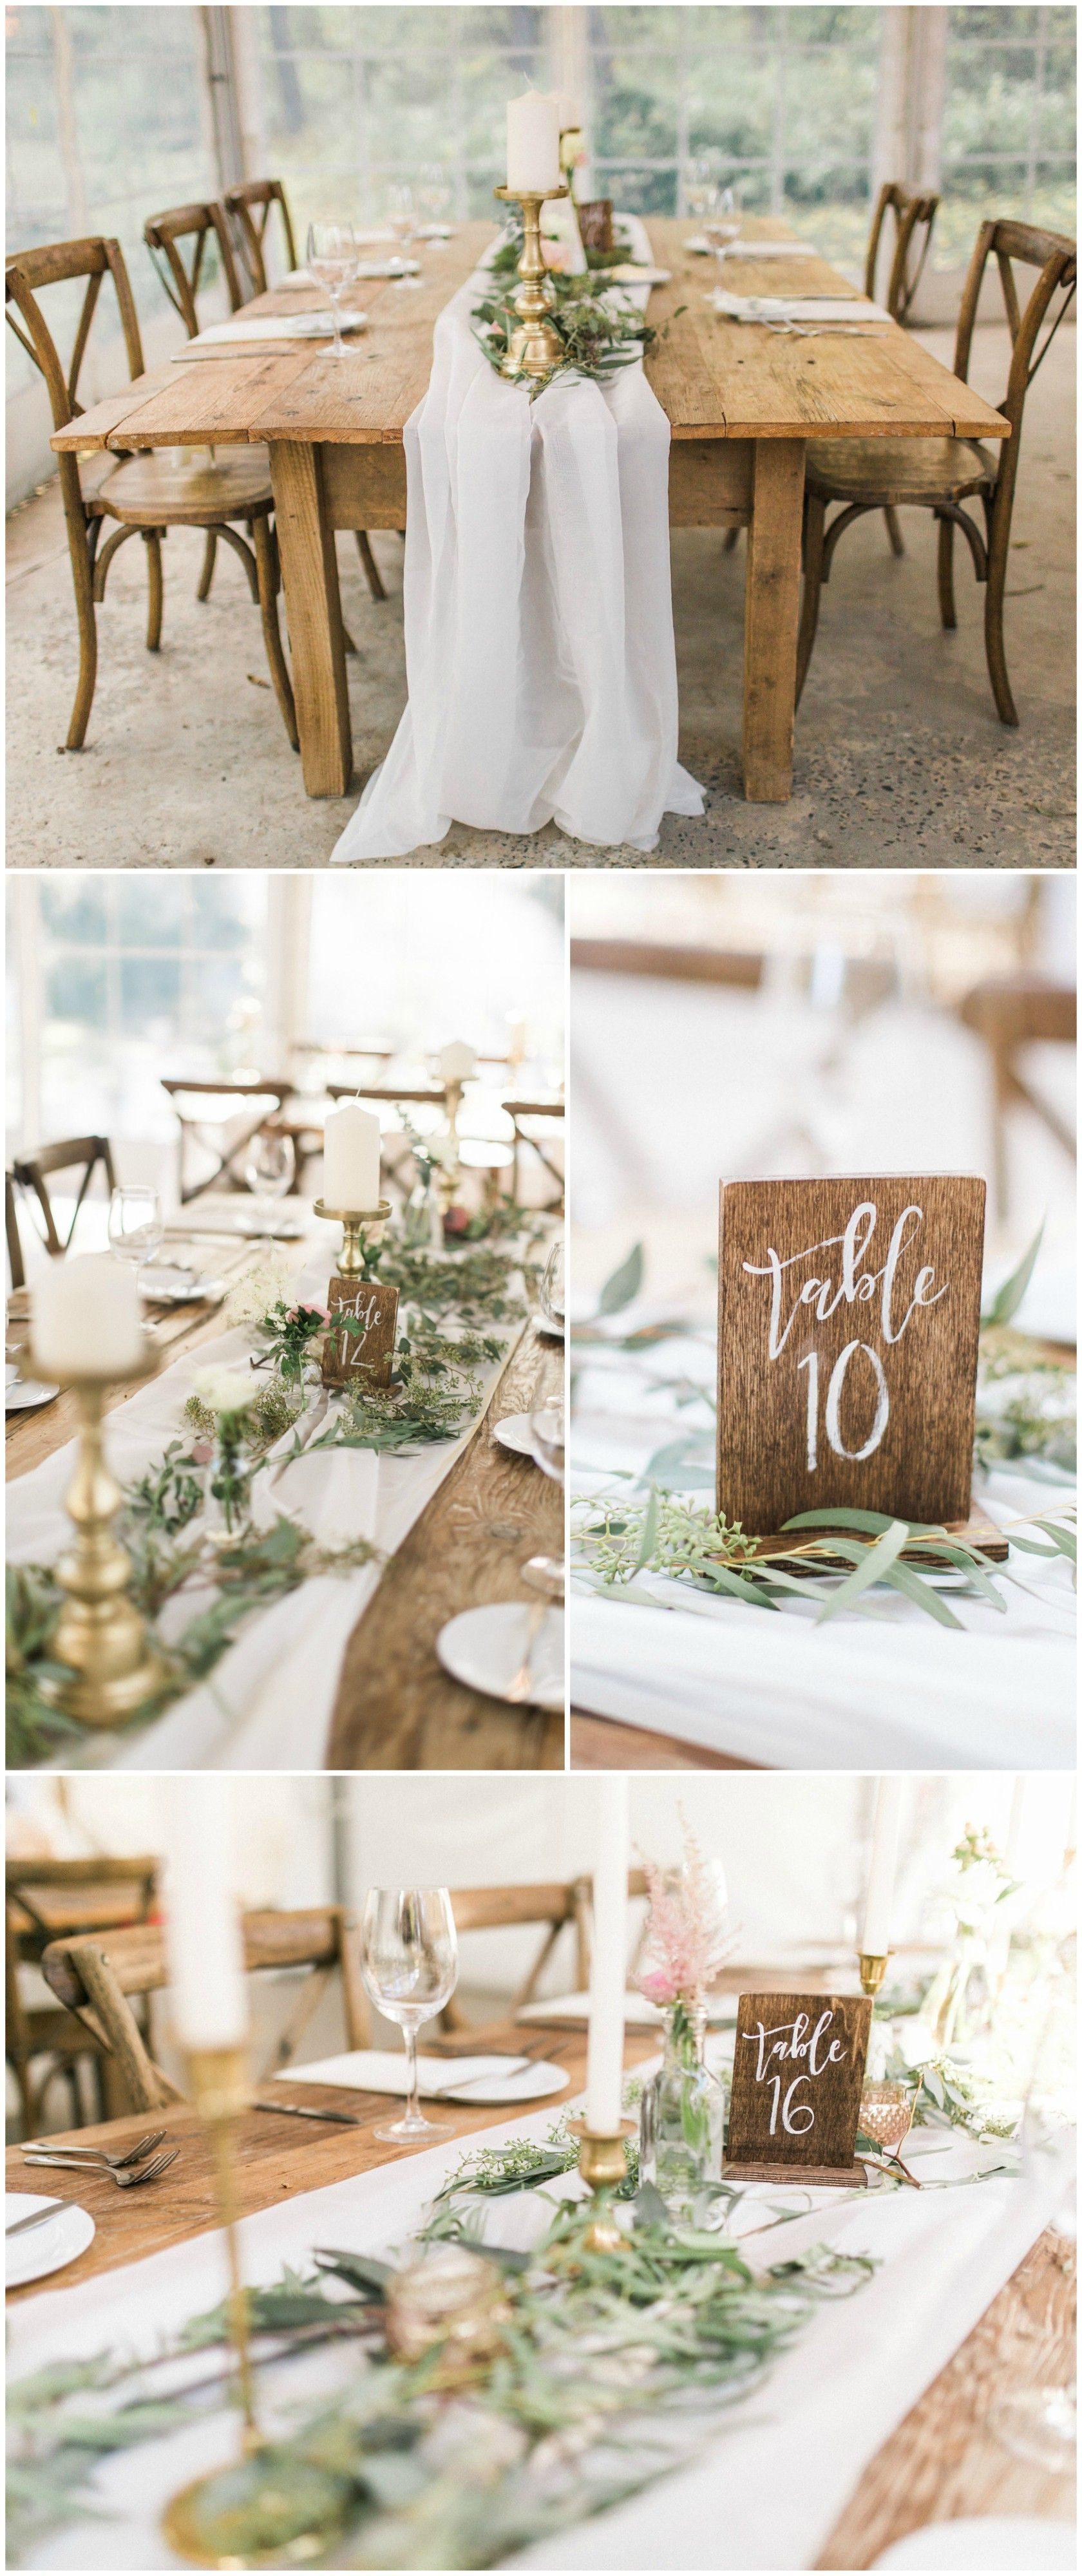 Wedding Wooden Chairs Retro Table And Canada Natural Reception Block Numbers